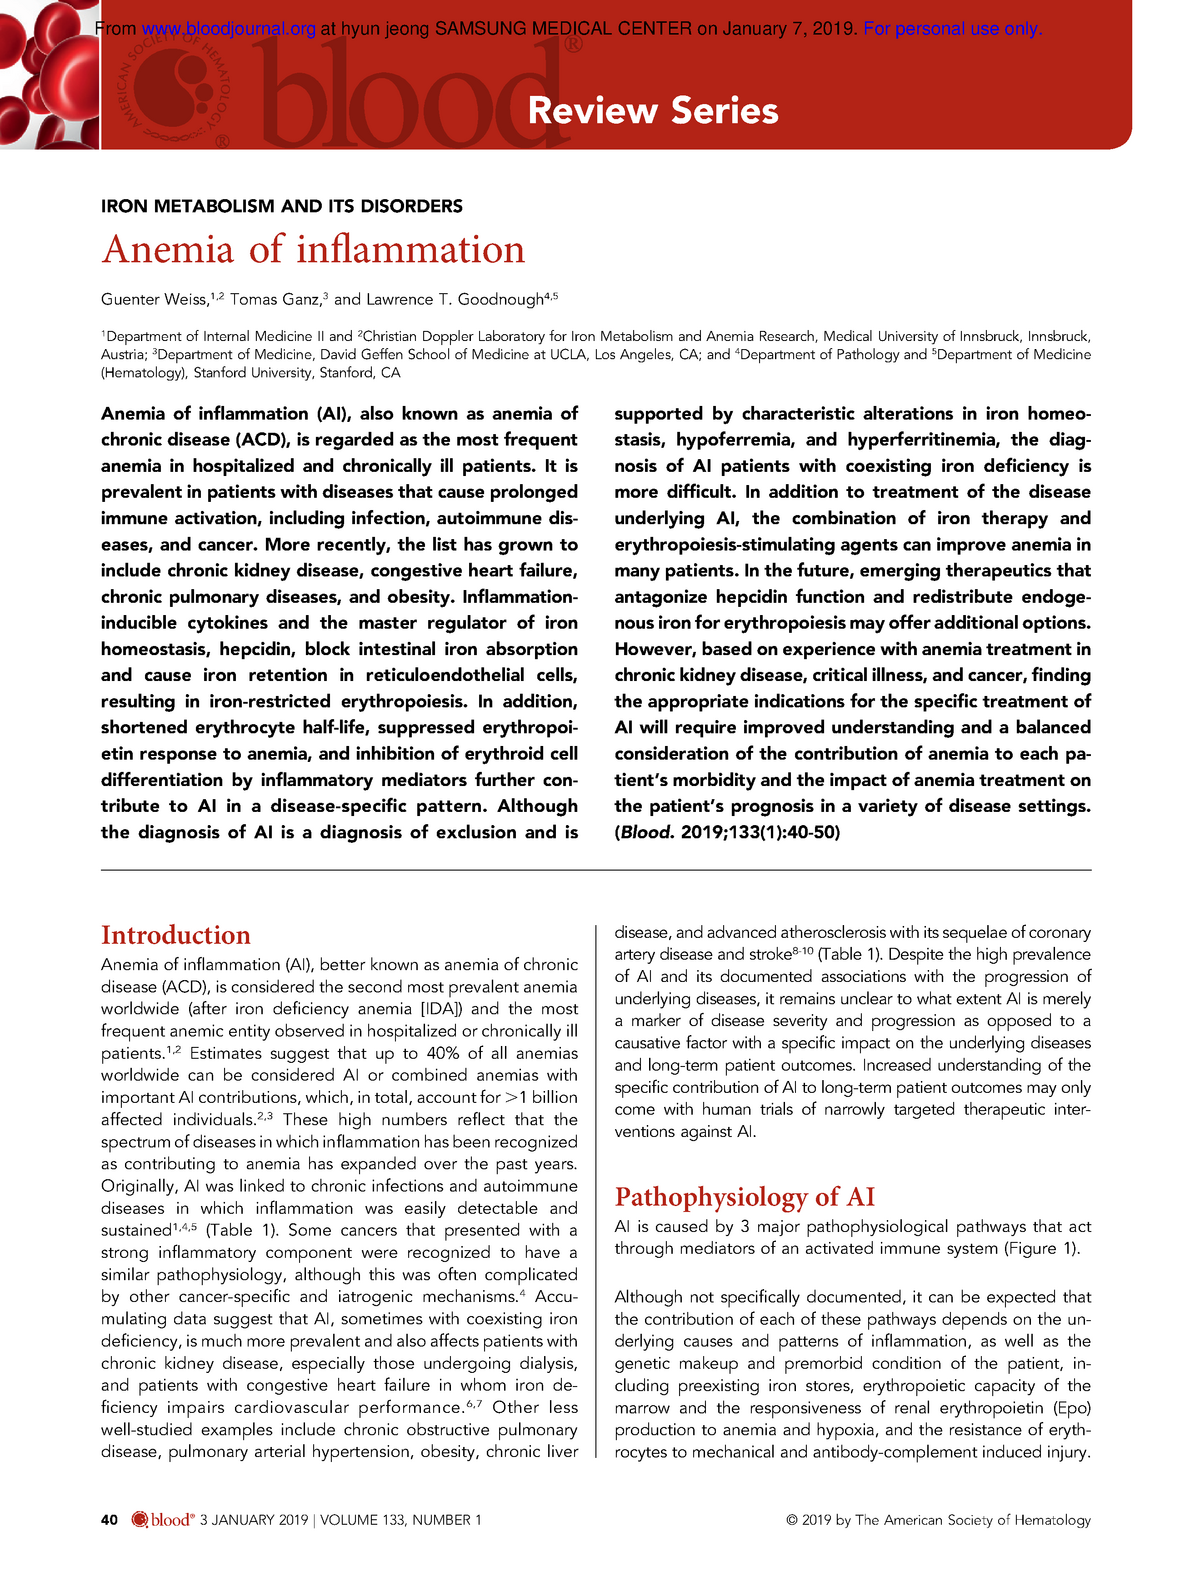 Blood 2019 Anemia of inflammation - Medicina - Uninorte